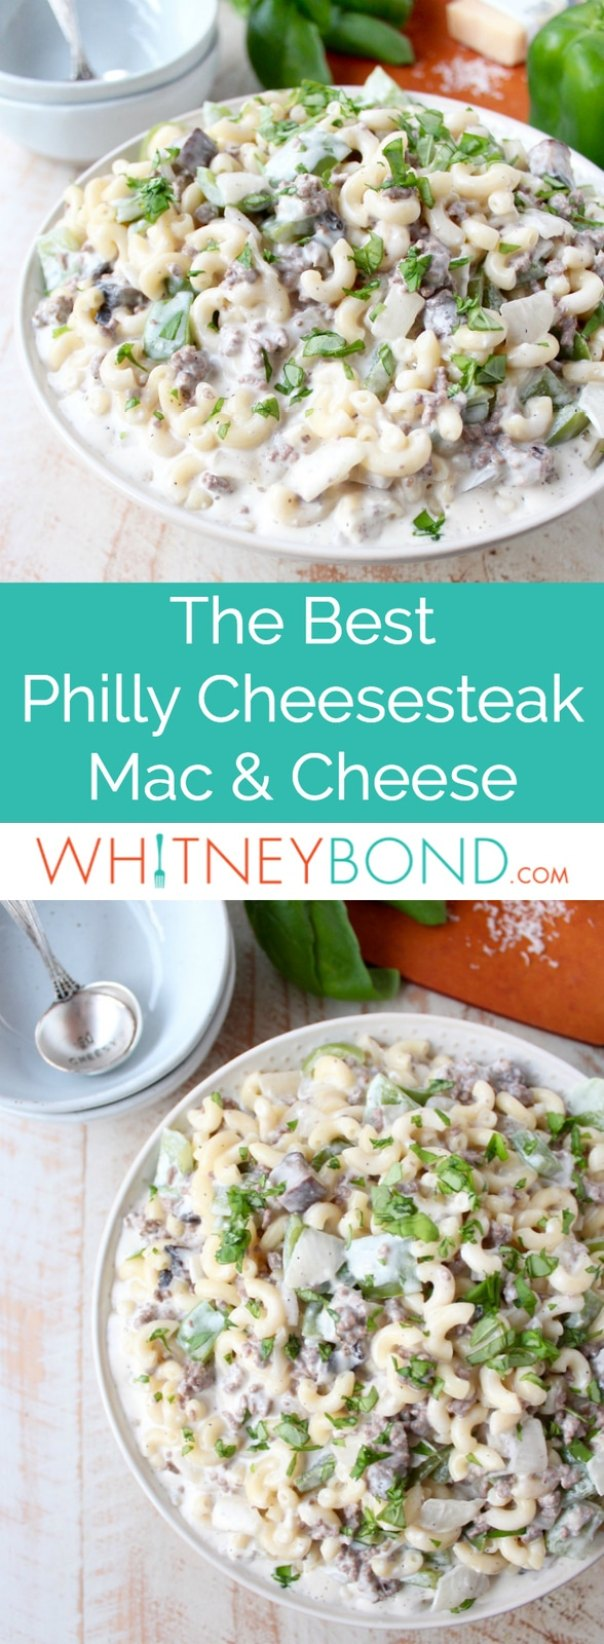 This insanely delicious Mac and Cheese recipe is a seriously scrumptious twist on the Philly Cheesesteak and it's easily made in only 29 minutes!